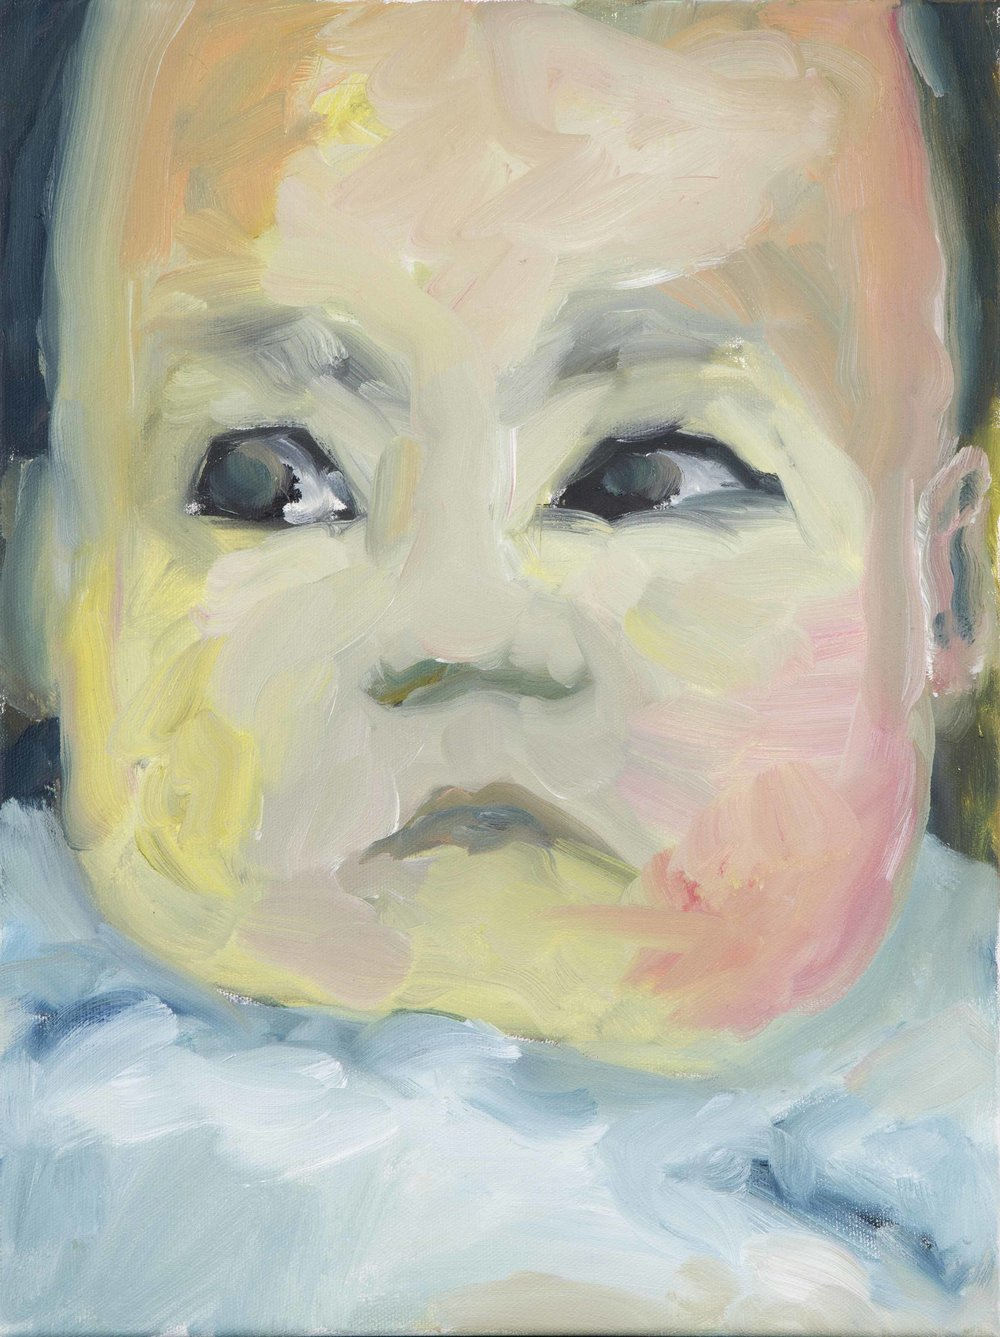 Beatrix 1   2012  oil on canvas  30 x40 cm  private collection